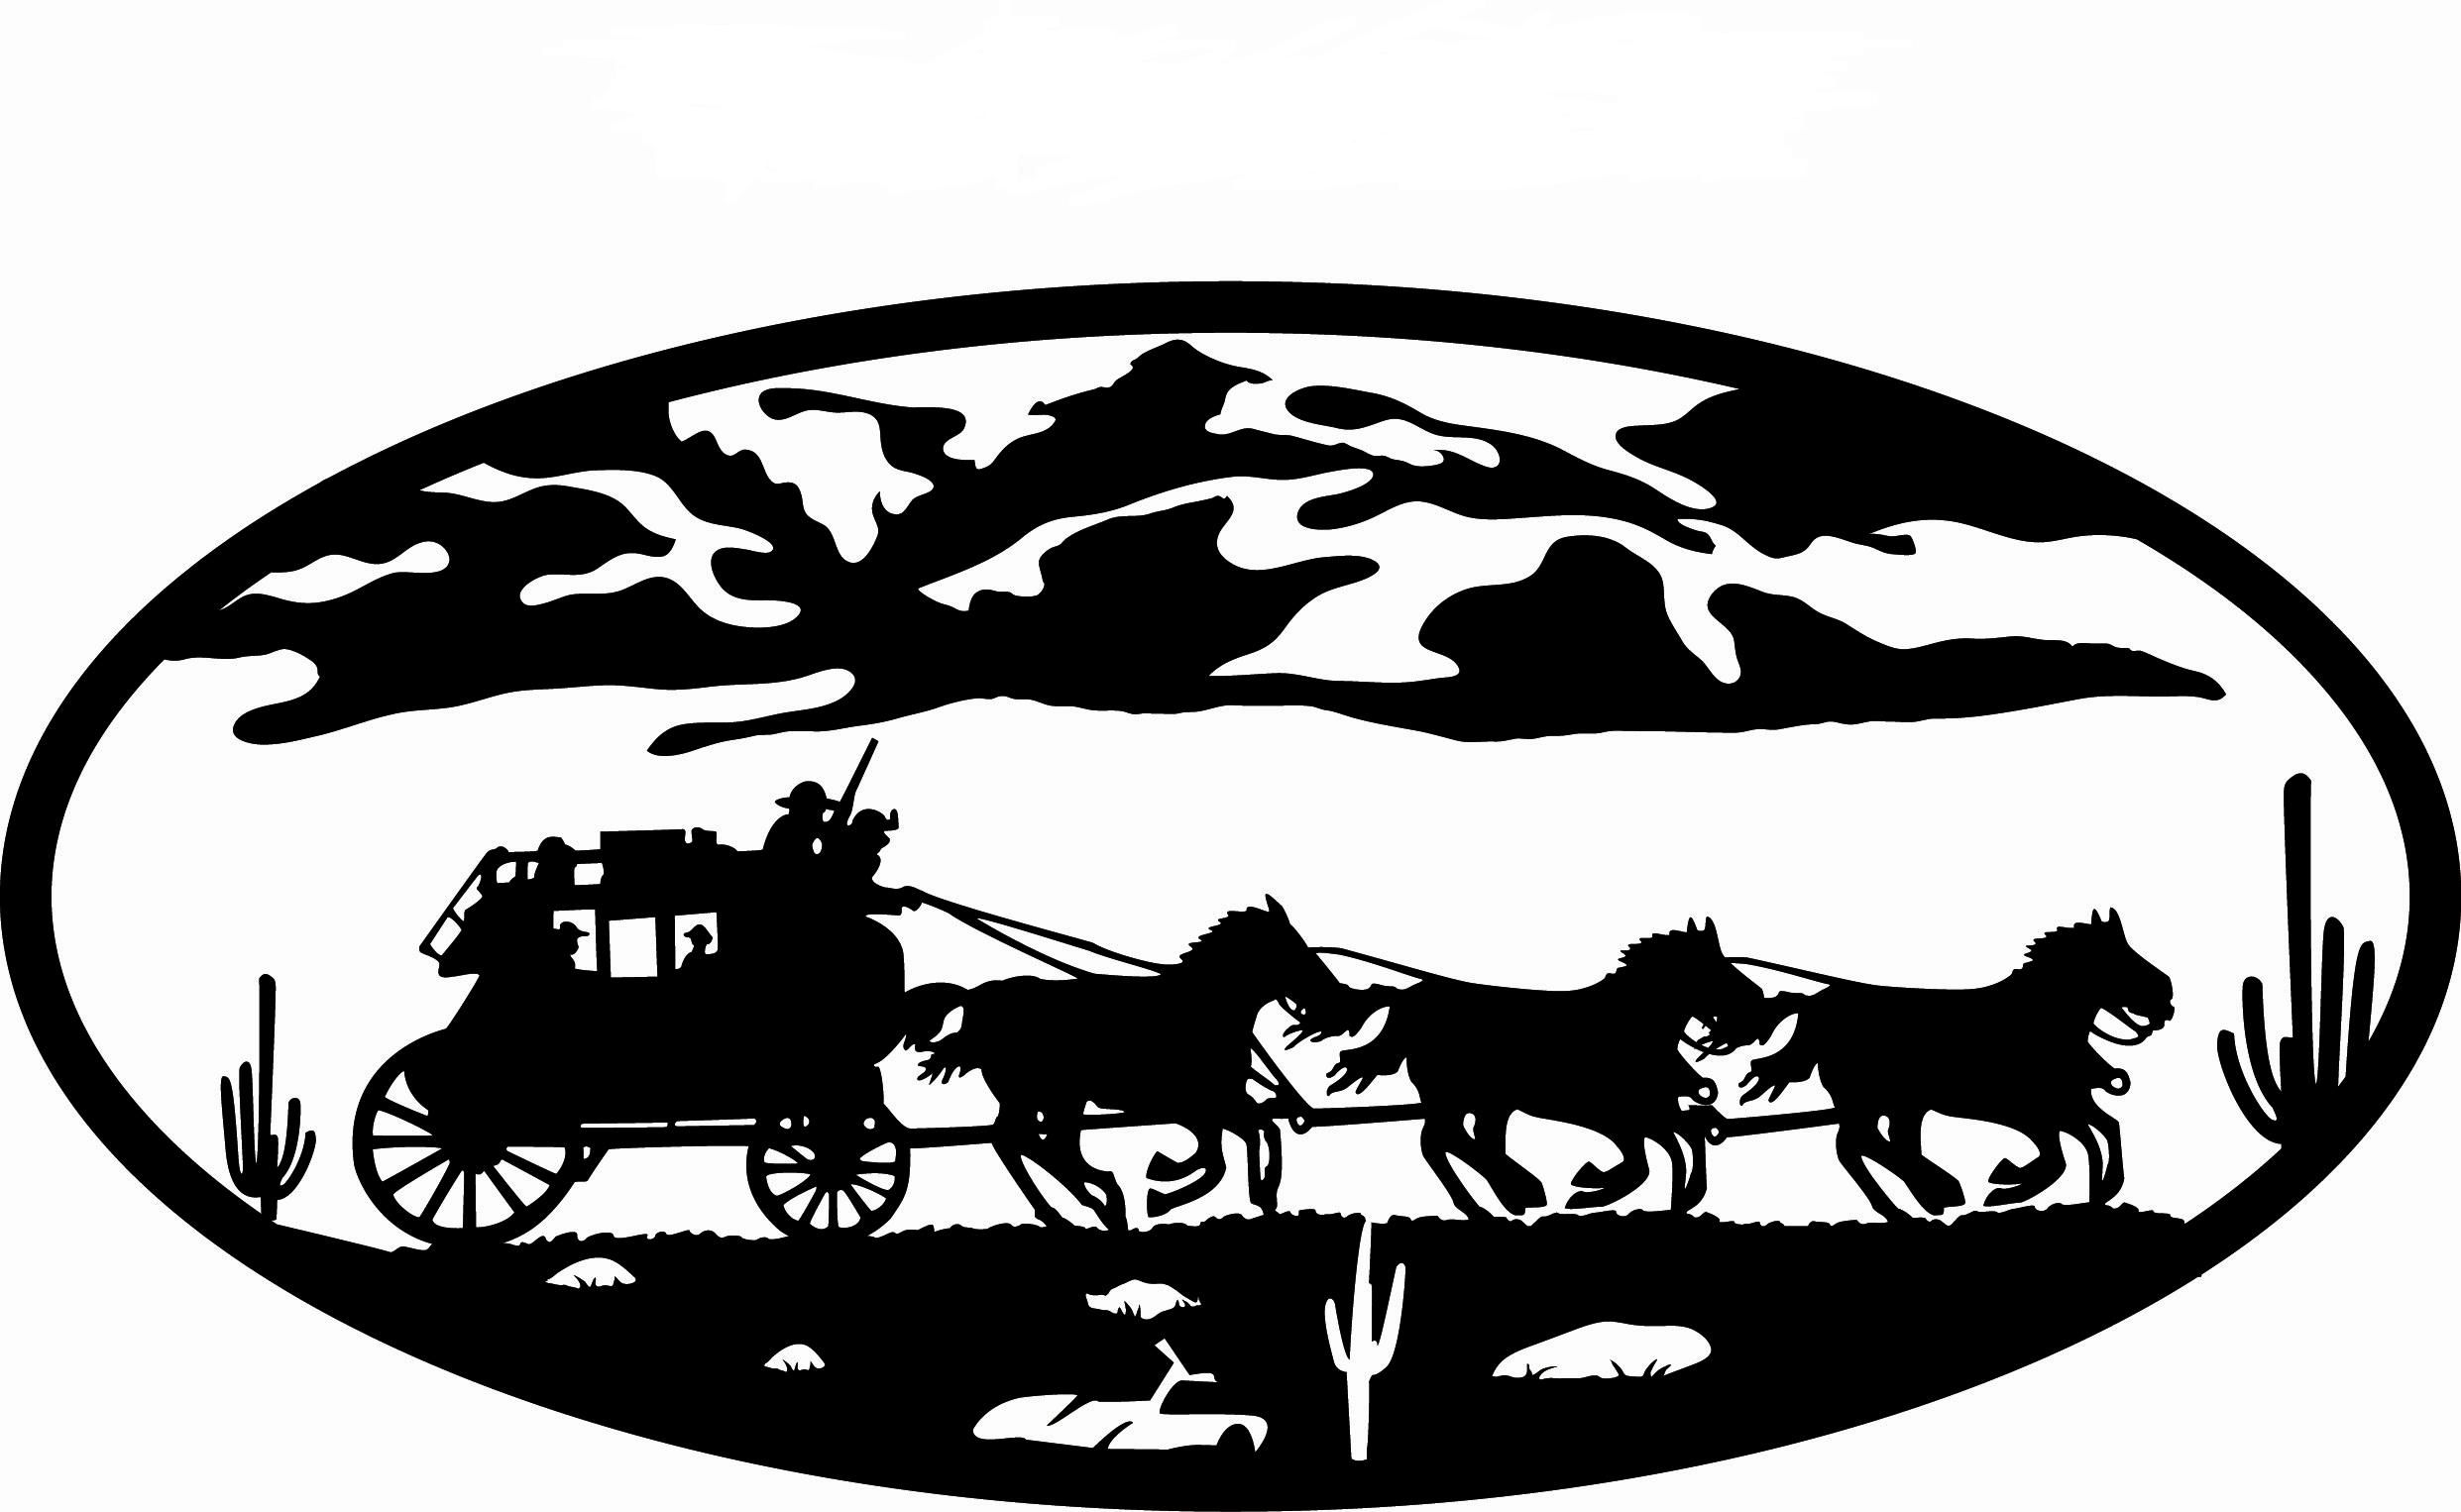 METAL Amish Horse and Buggy Black Silhouette Die Cut Out ... |Metal Horse And Buggy Silhouette